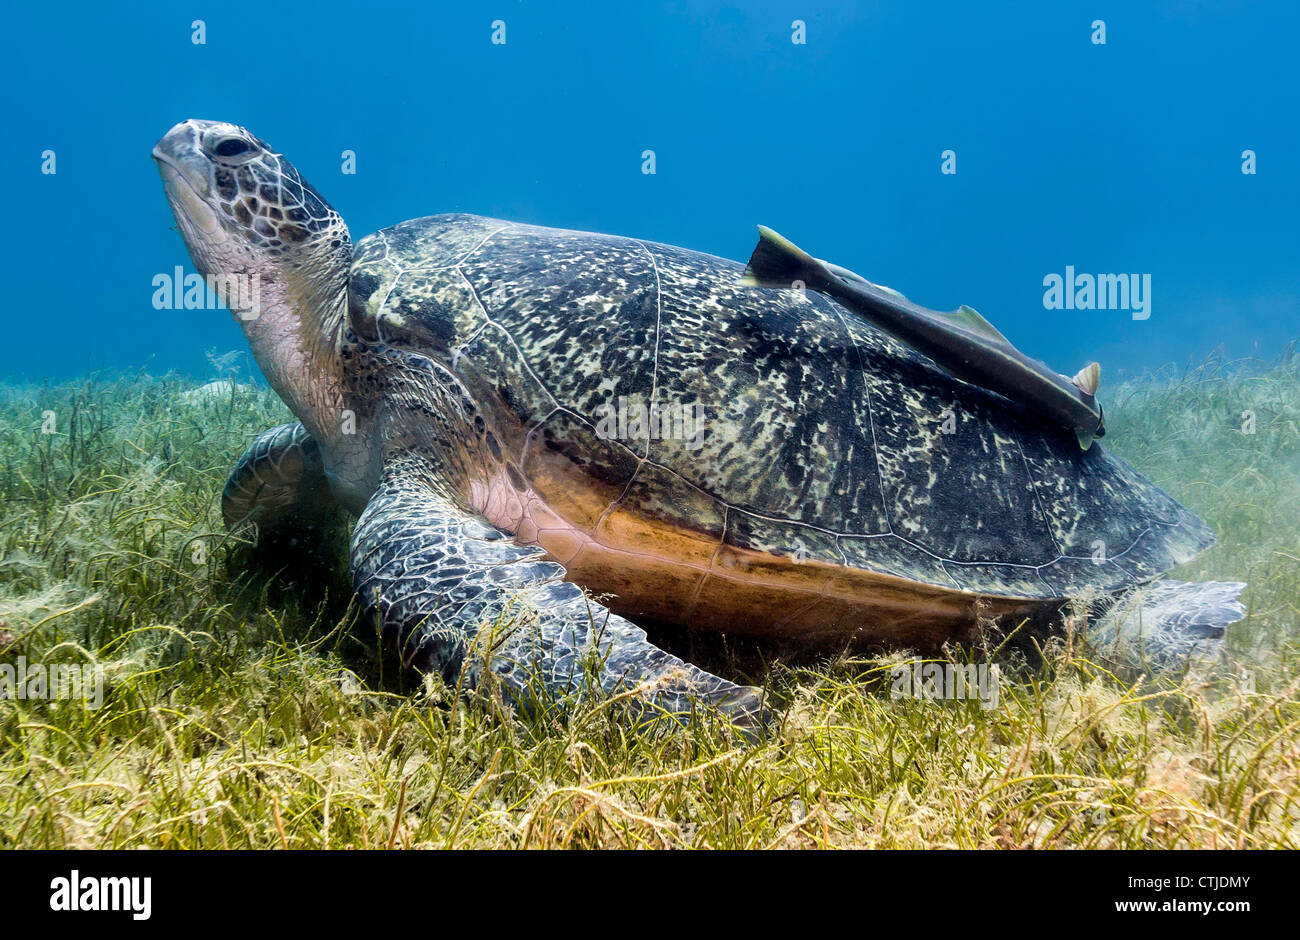 Green Turtle with a large Remora on it's shell rests on some shallow seagrass in the Egyptian Red Sea (Nuweiba) - Stock Image